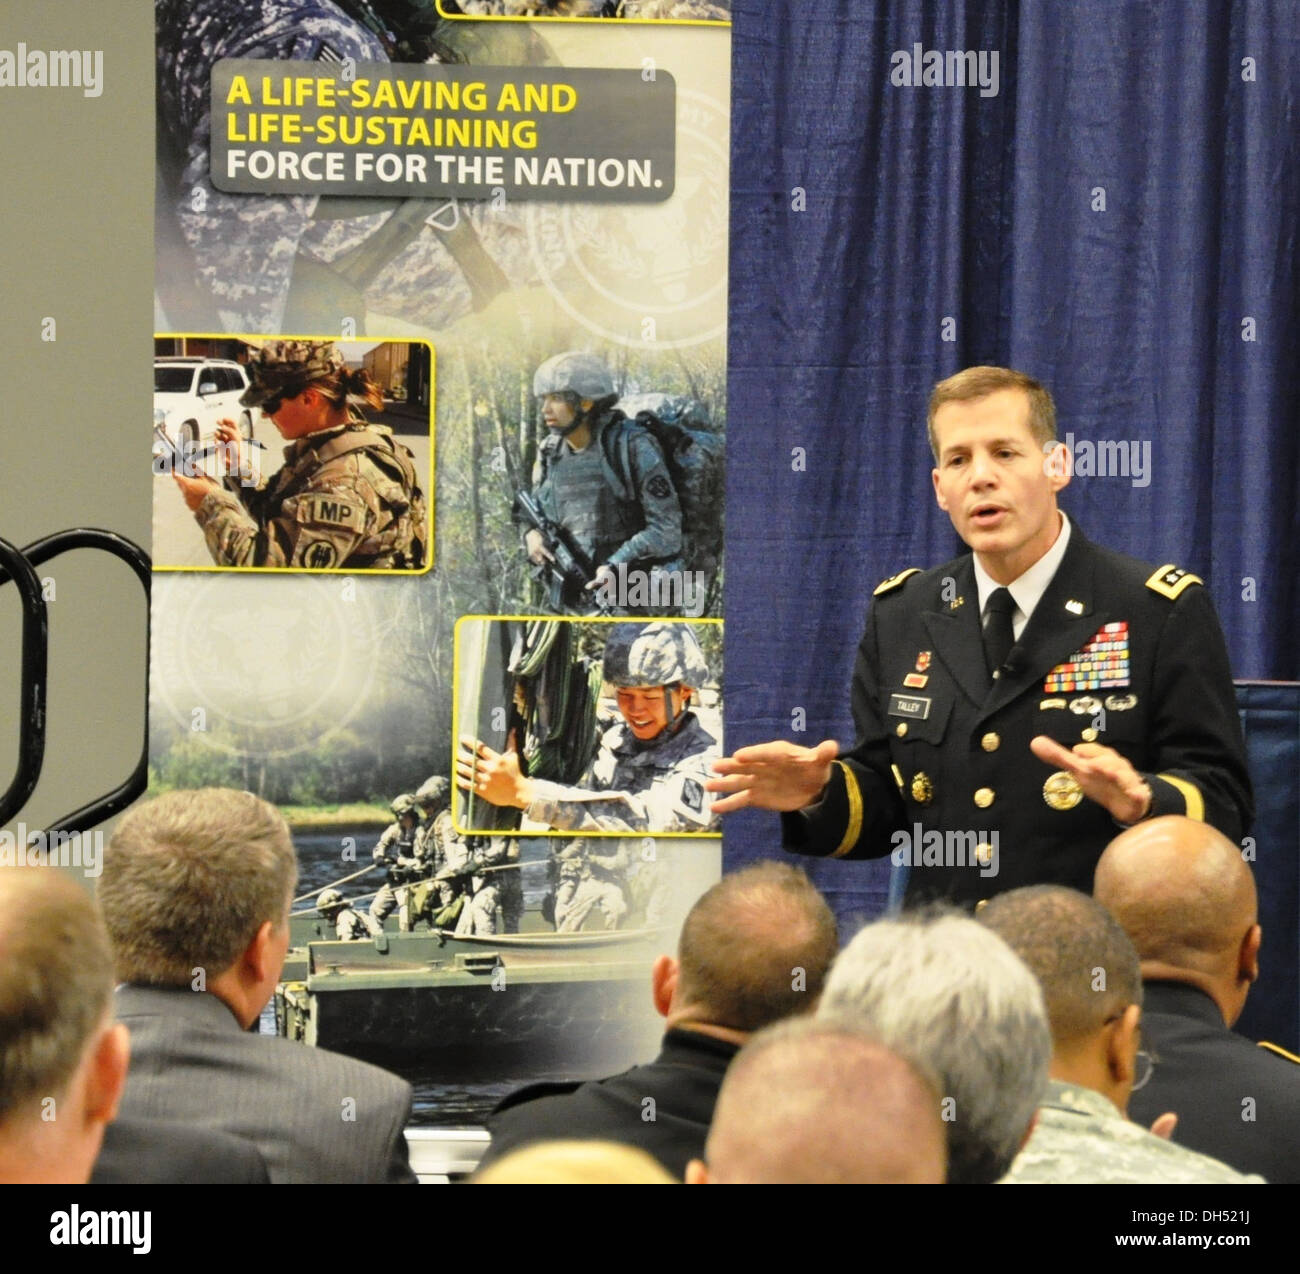 Lt. Gen. Jeffrey Talley speaks during the Association of the United States Annual Meeting and Convention in Washington, DC Tuesday. Talley discussed his priorities as chief of Army Reserve and commanding general US Army Reserve Command as well as new init - Stock Image